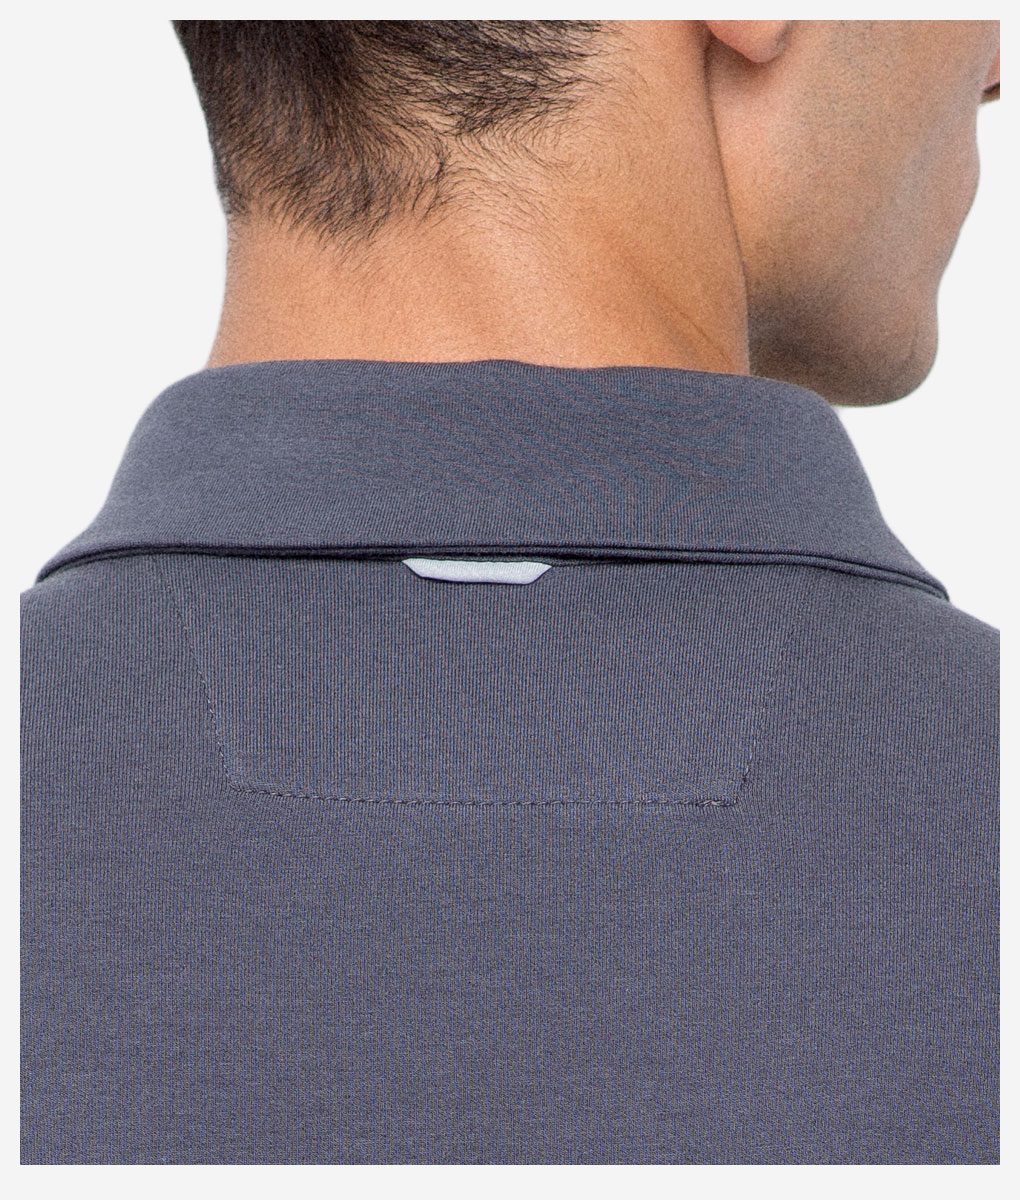 Transparent-casual-cycling-titanium-classic-back-collar-detail